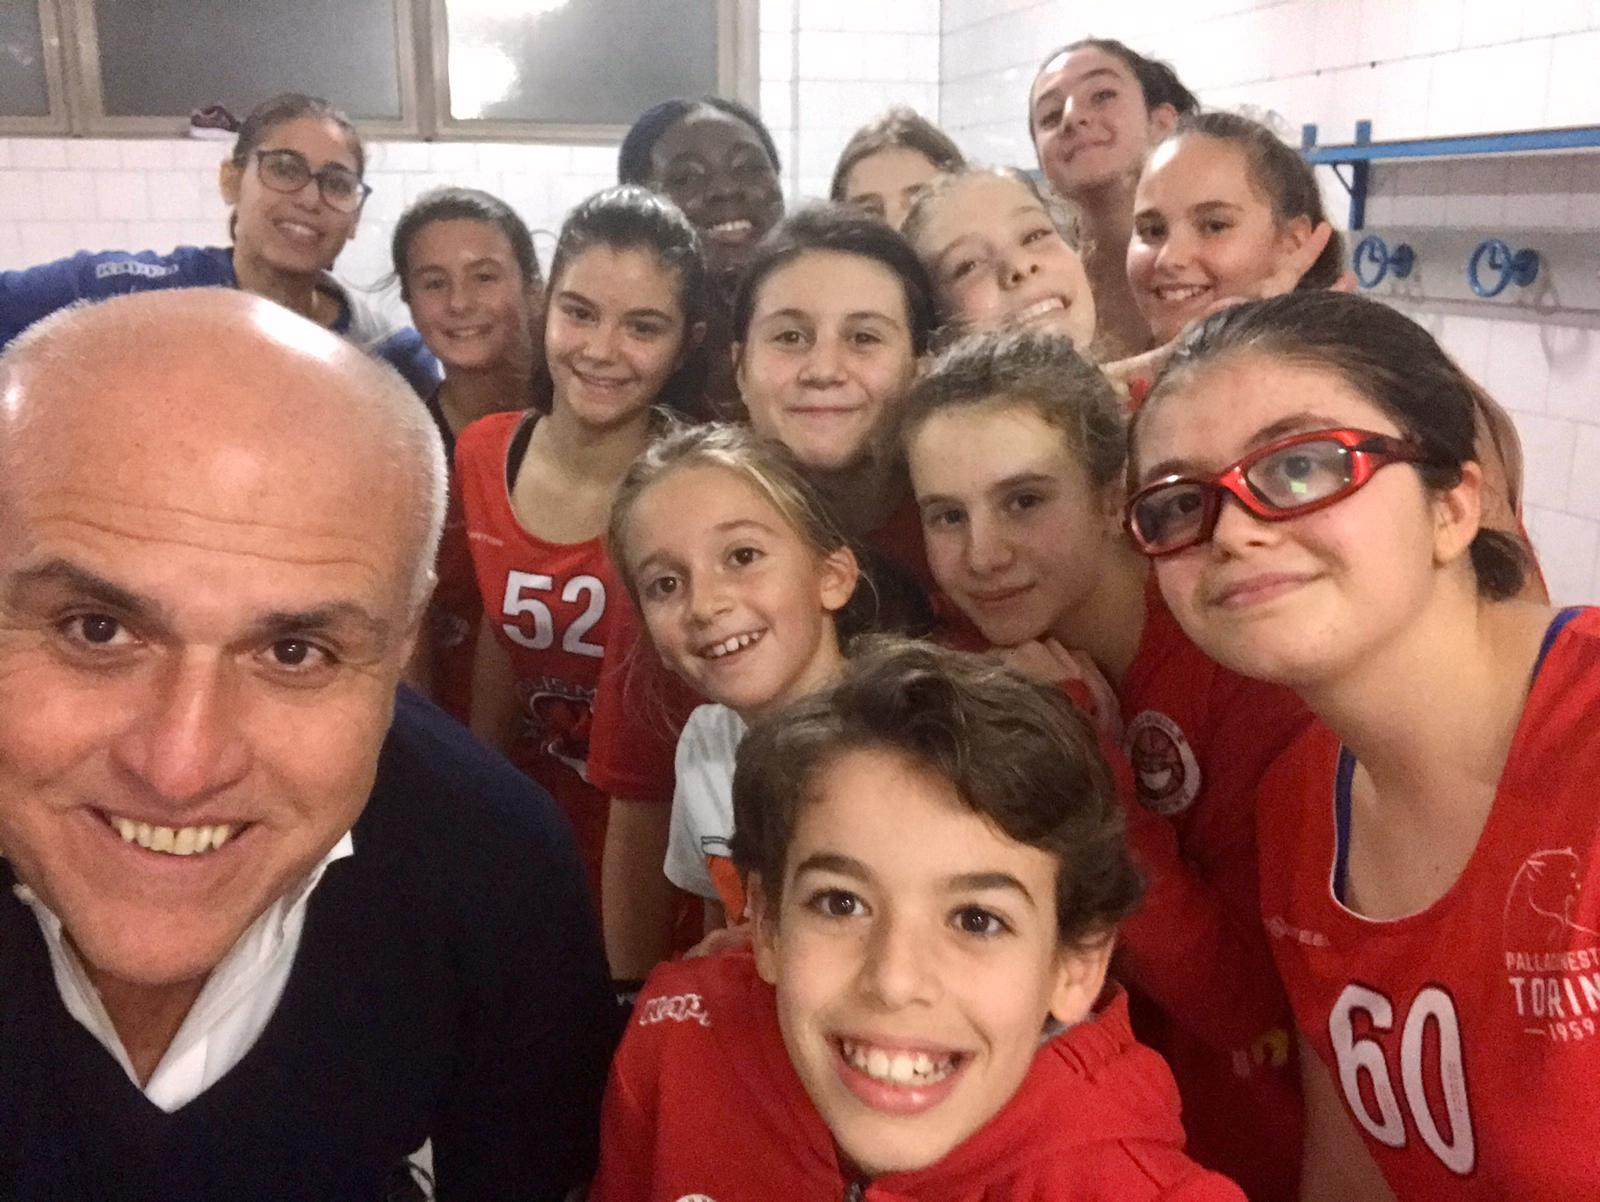 Brave ragazze, bell'esordio in Coppa Piemonte Under 13!